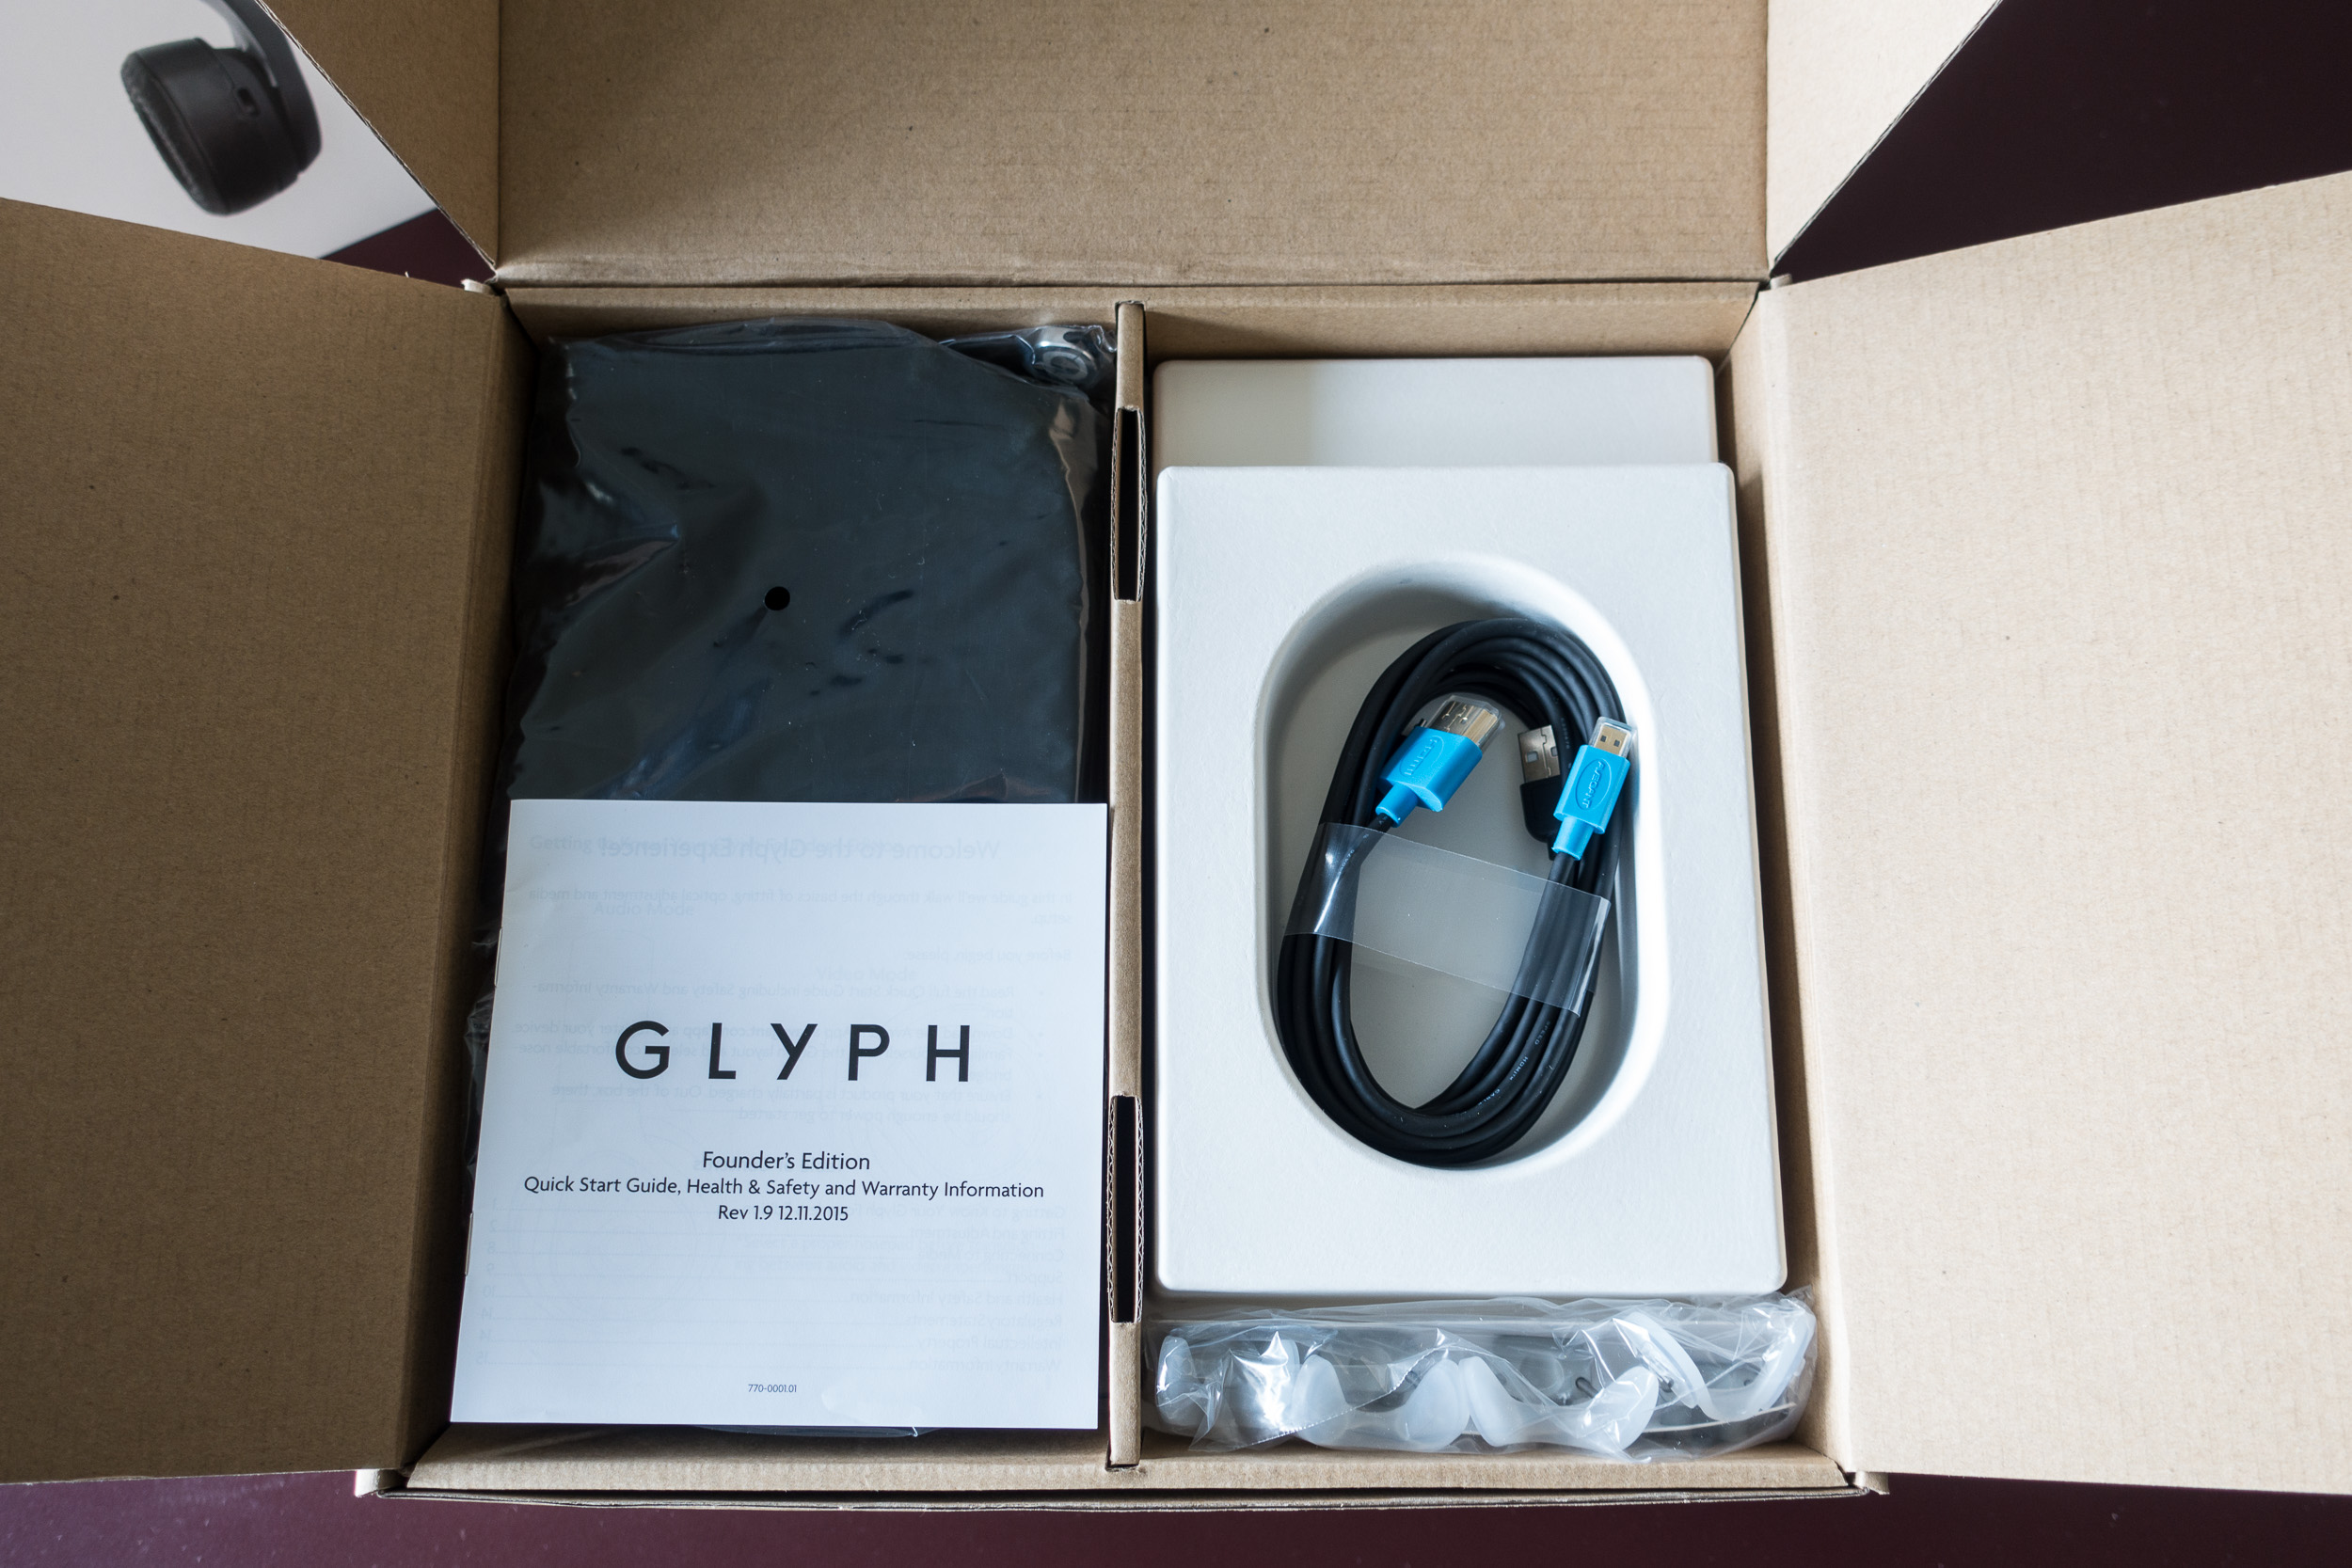 Avegant Glyph Founder's Edition unboxing: top layer includes manual, cables, nose pieces, and bag